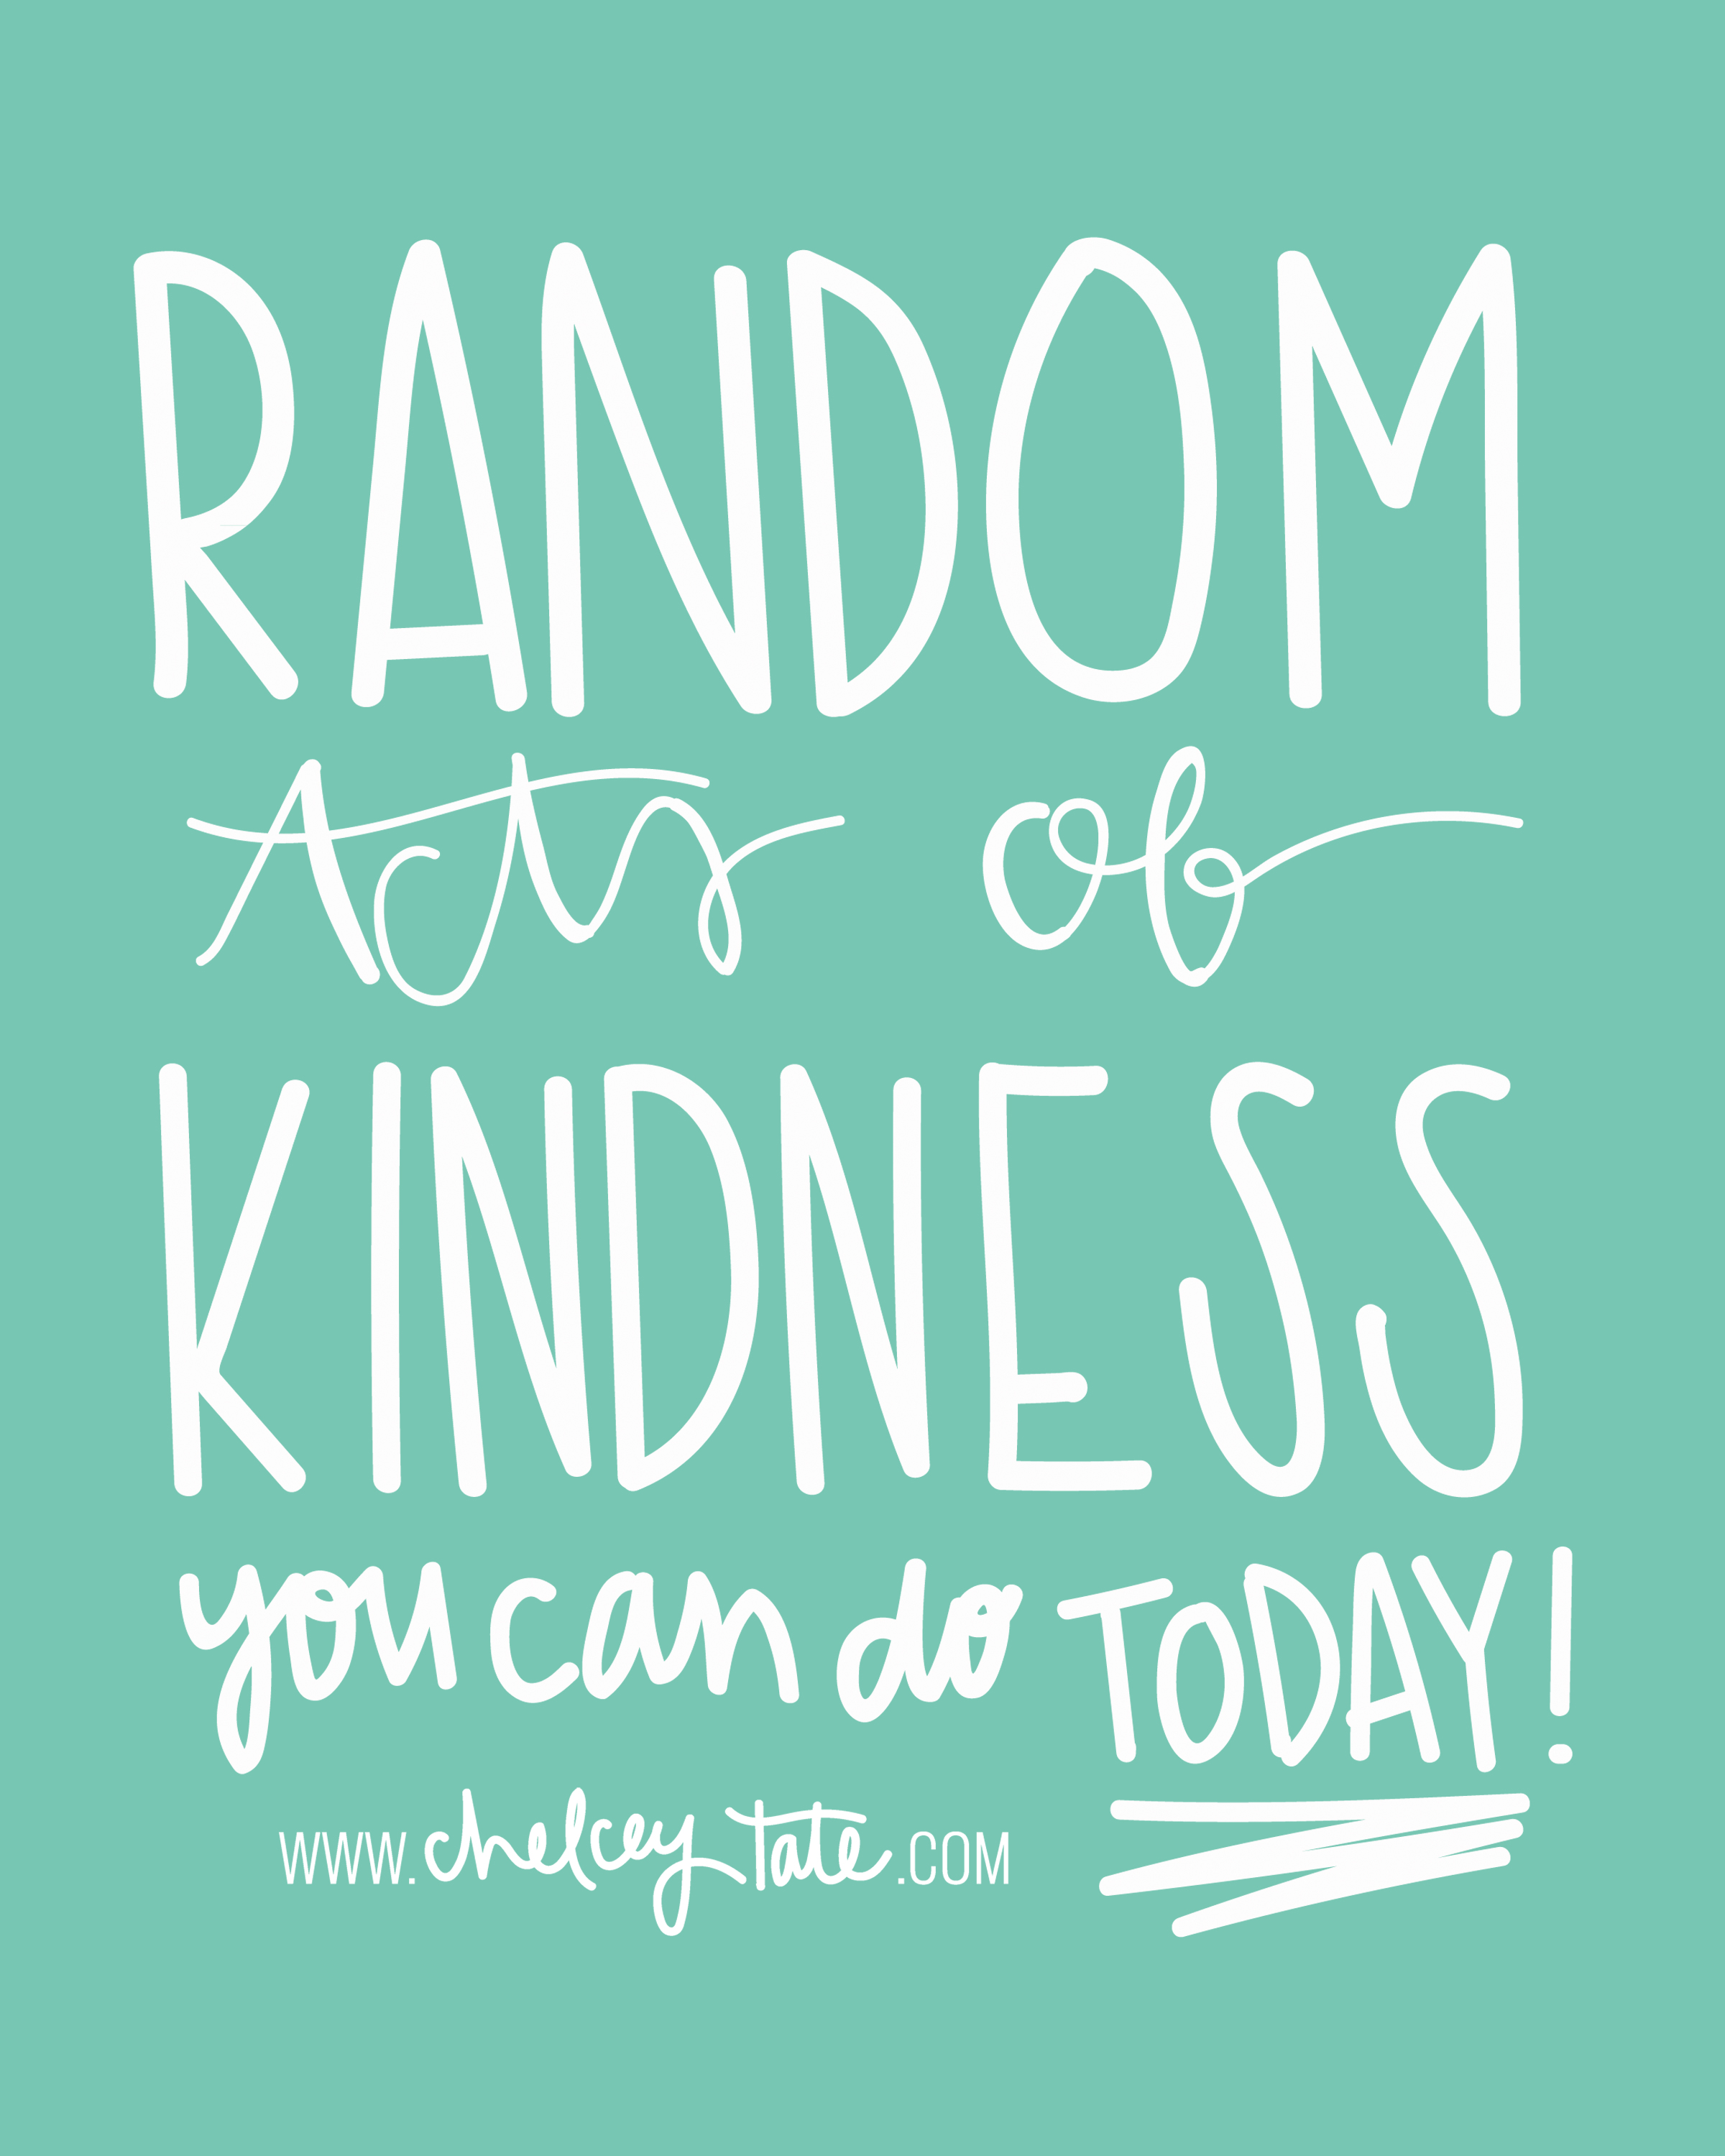 25 Easy Random Acts of Kindness You Can Start Doing Today!  chelceytate.com